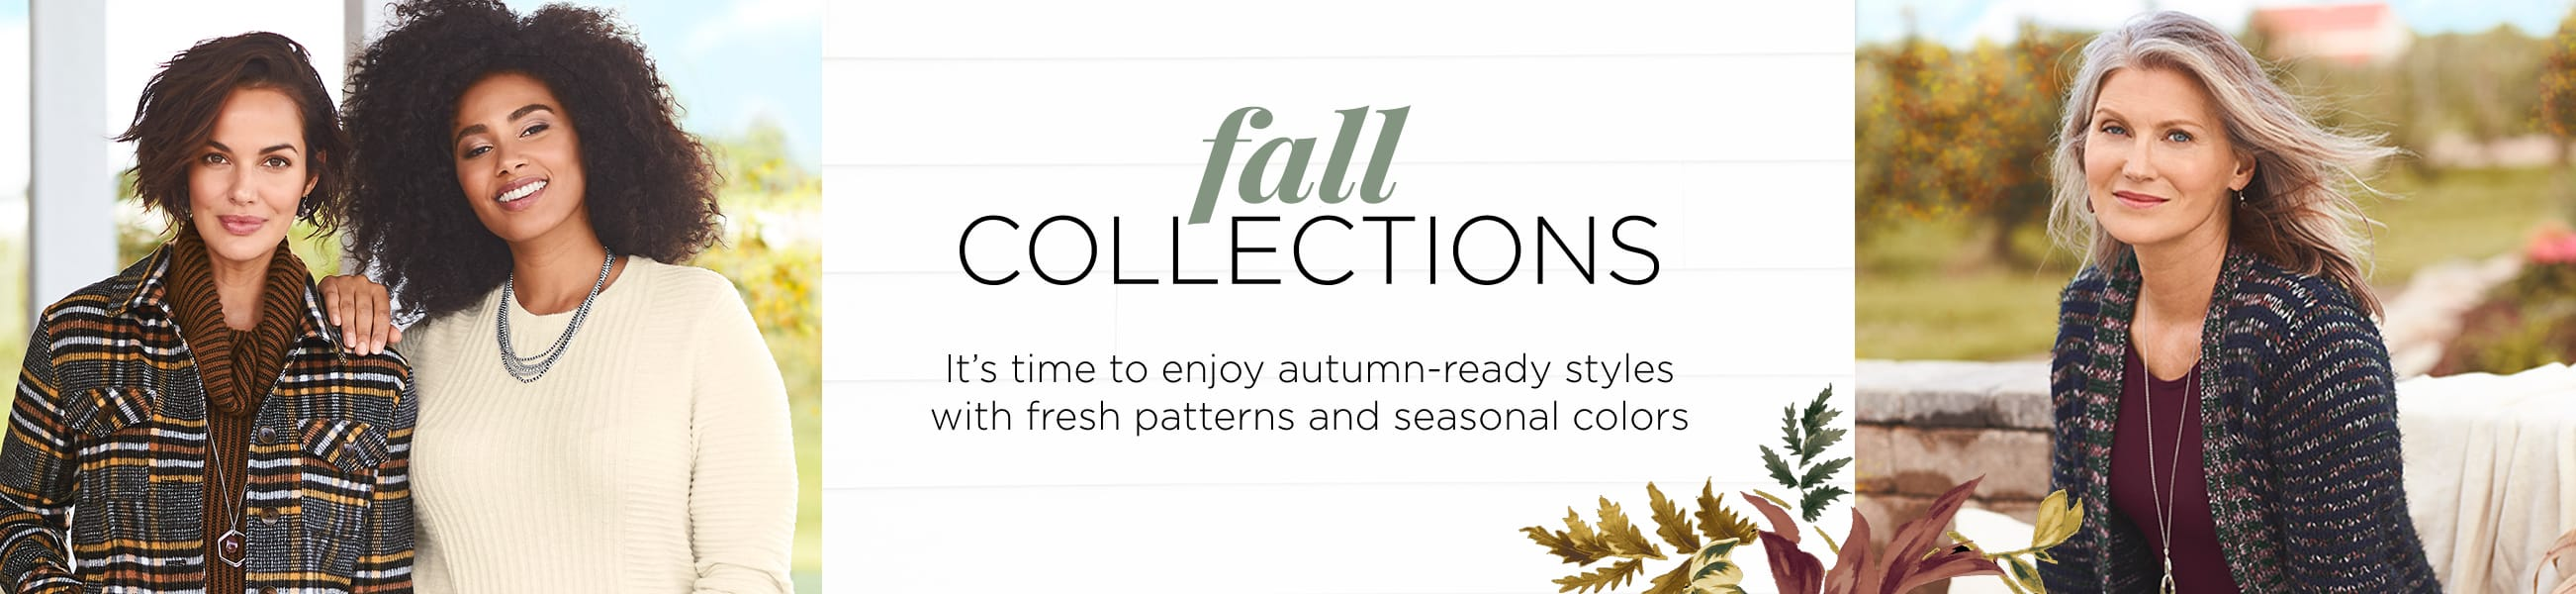 Fall Collections. It's time to enjoy autumn-ready styles with fresh patterns and seasonal colors!